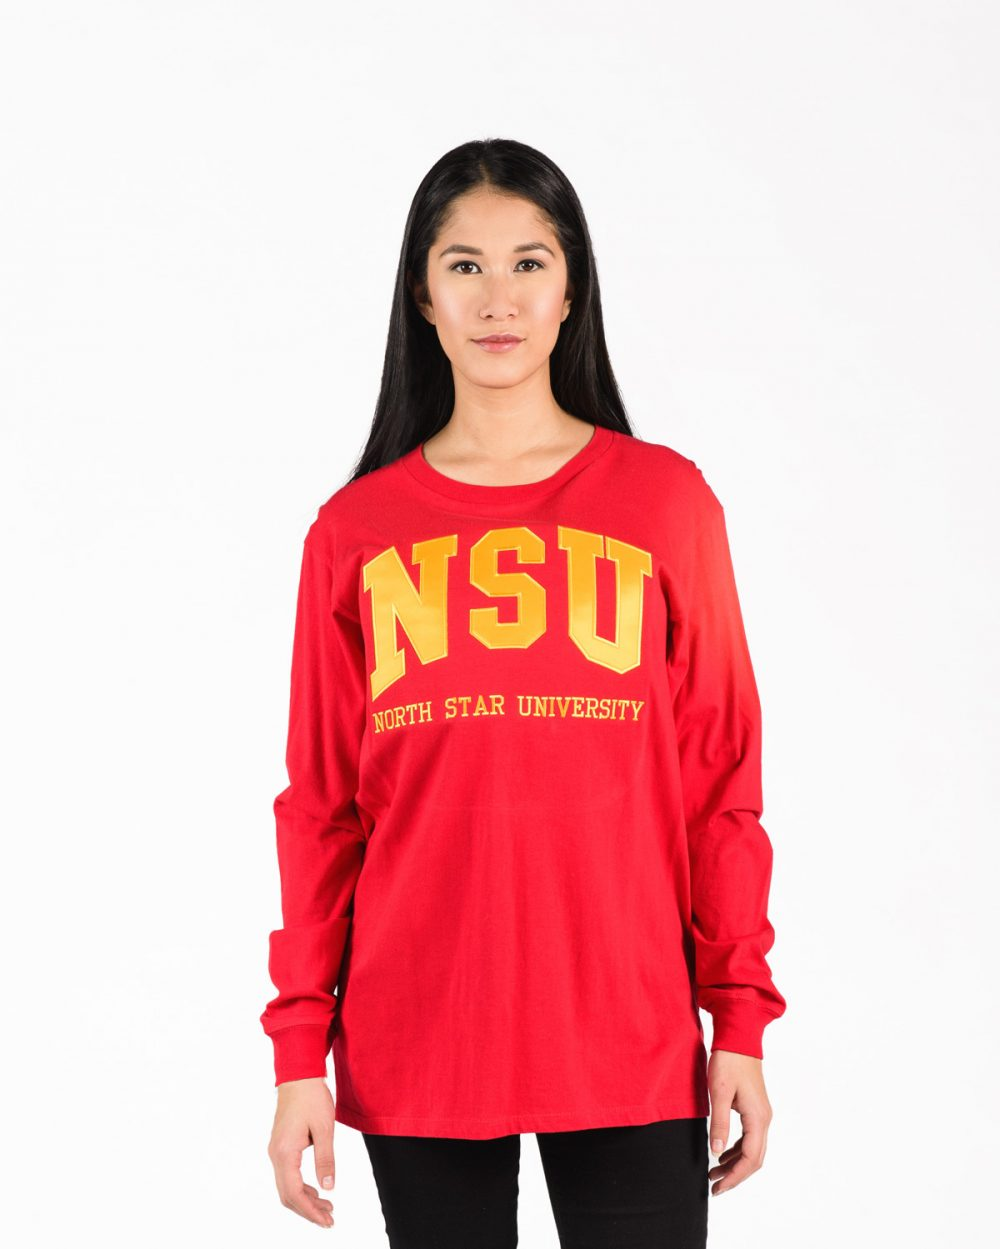 Unisex fit Signature Longsleeve 204 in red with yellow embroidery on woman.